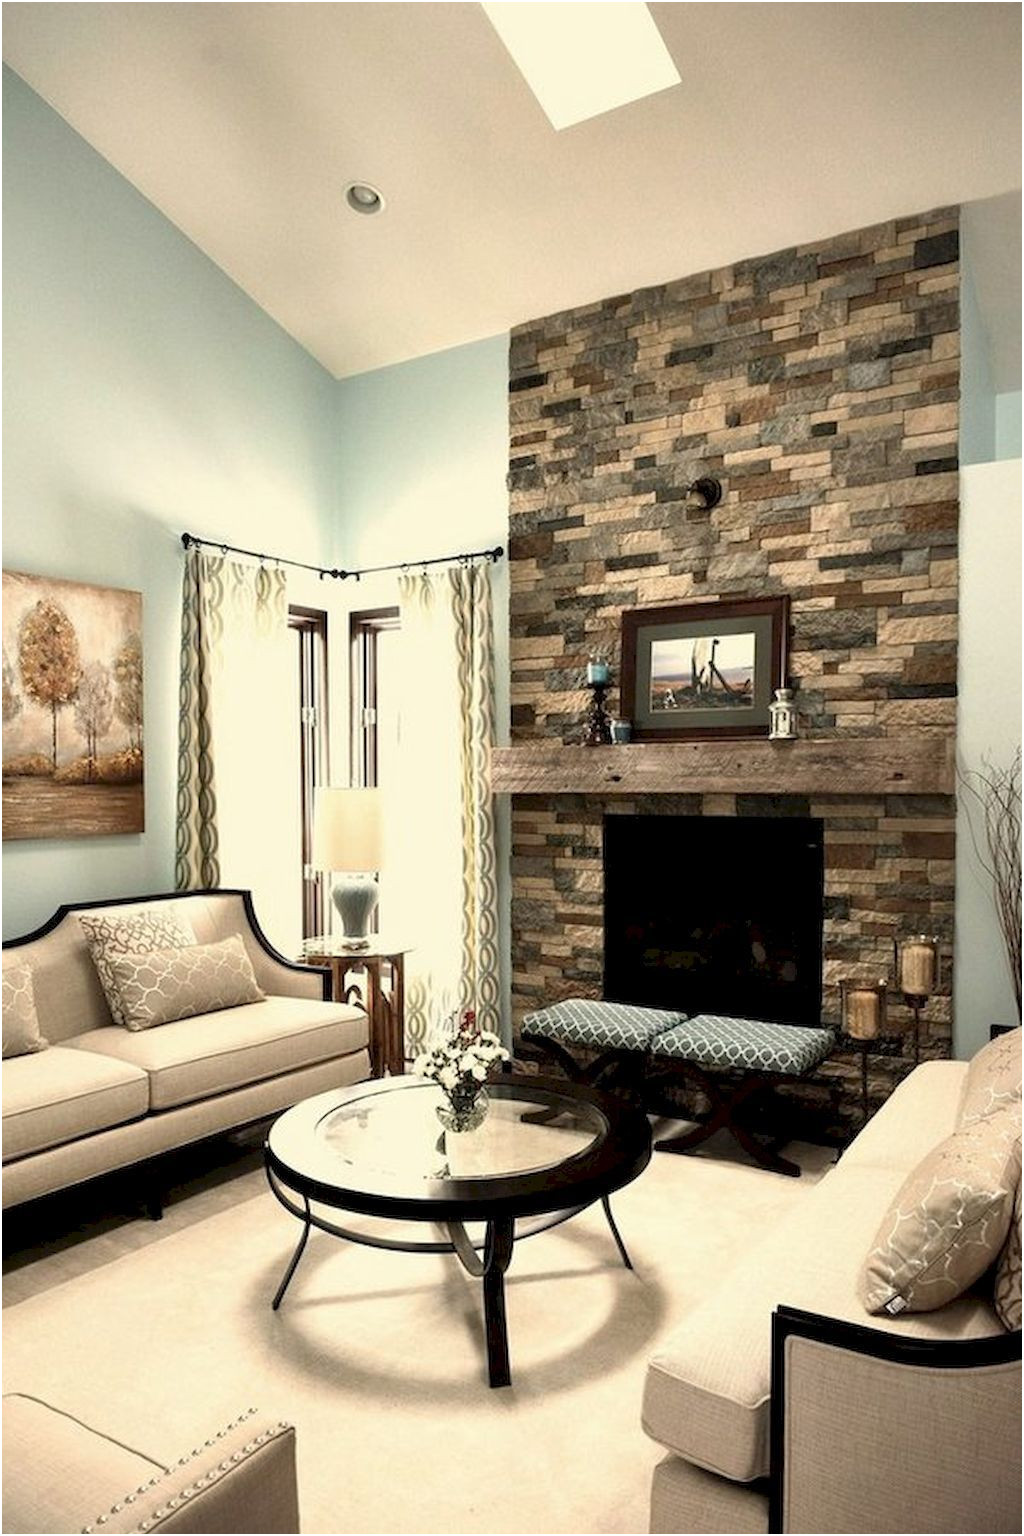 Decorate Fireplace Ideas Fresh 70 Gorgeous Apartment Fireplace Decorating Ideas